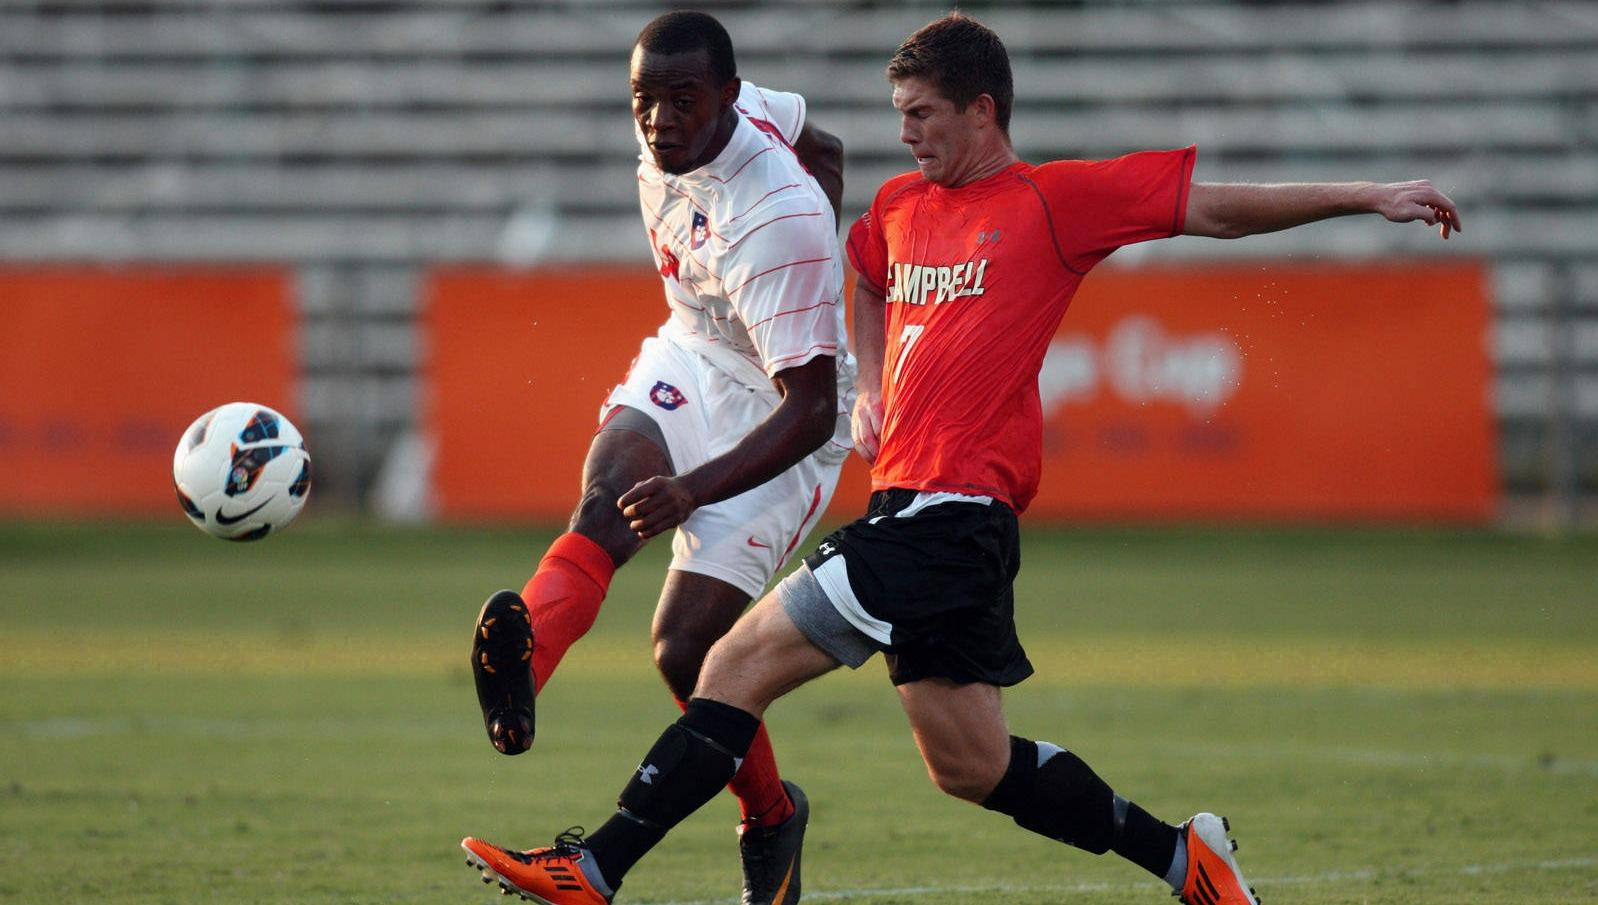 Clemson Will Play Host to Wofford Saturday Night in Exhibition Action